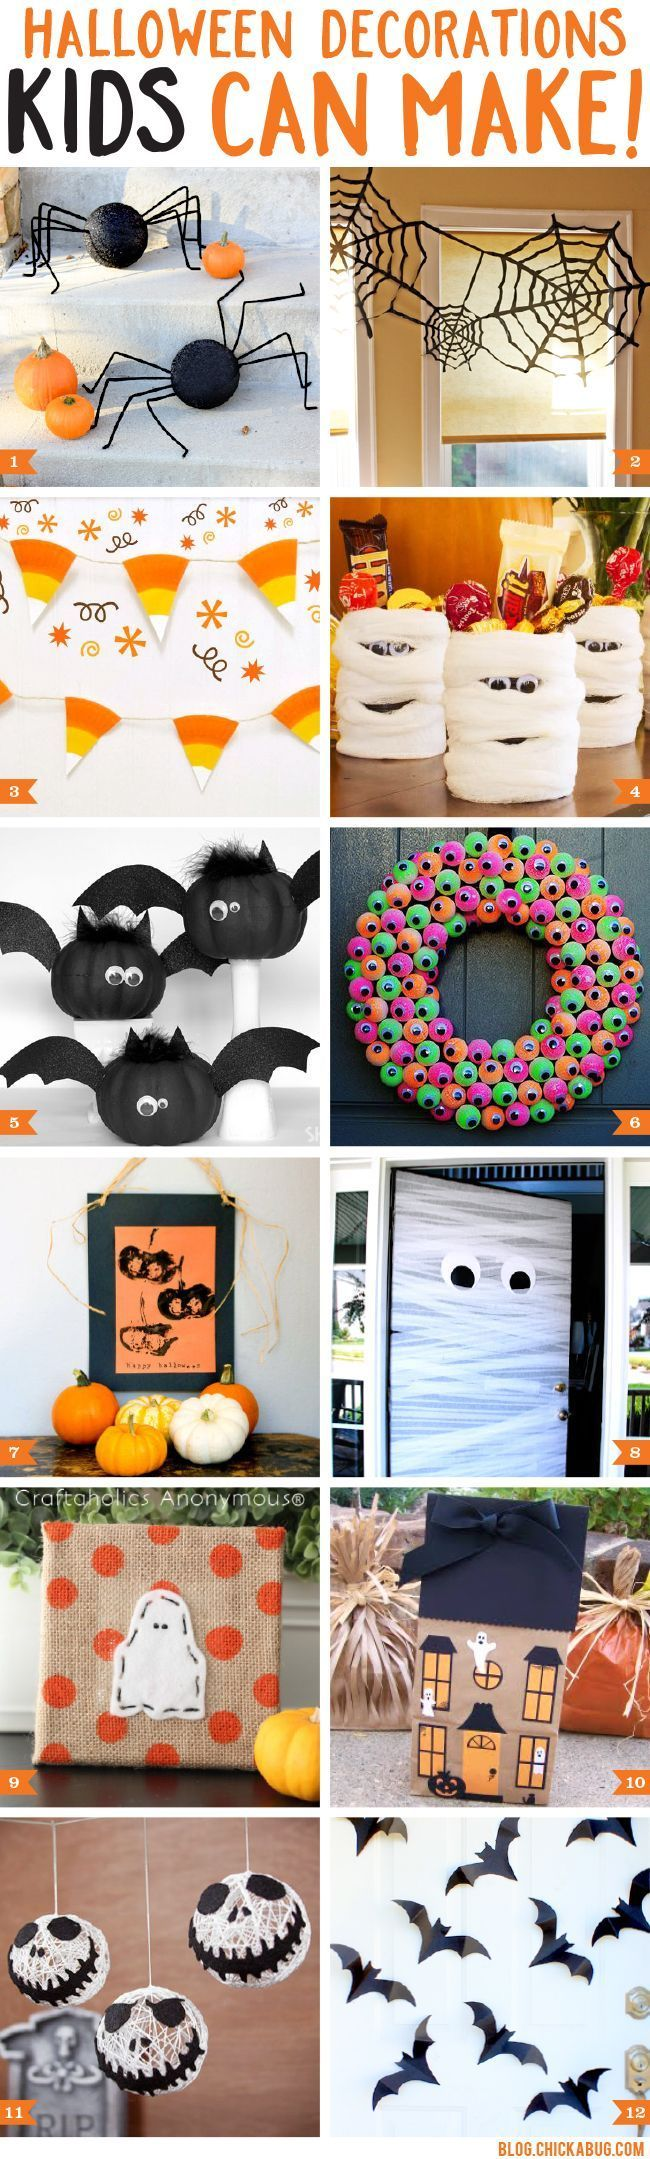 17 Best images about Holiday | Halloween on Pinterest | Pumpkins ...